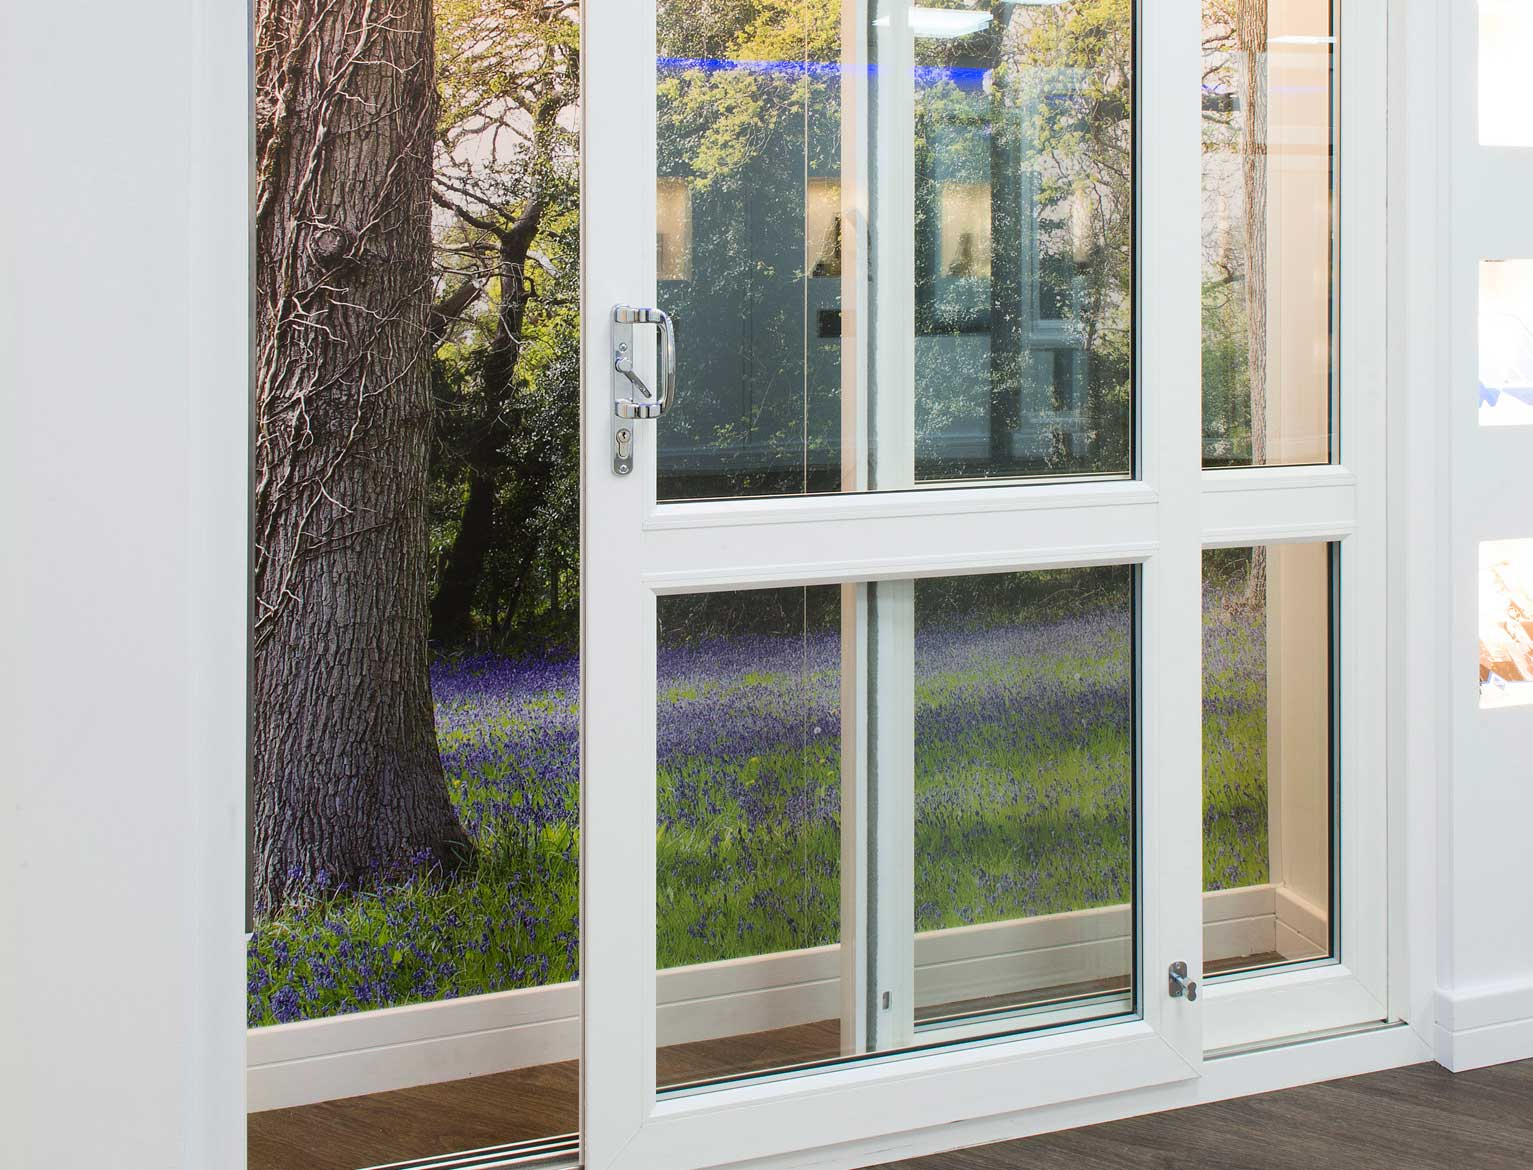 Upvc patio doors kent upvc patio doors prices sevenoaks for Upvc balcony doors